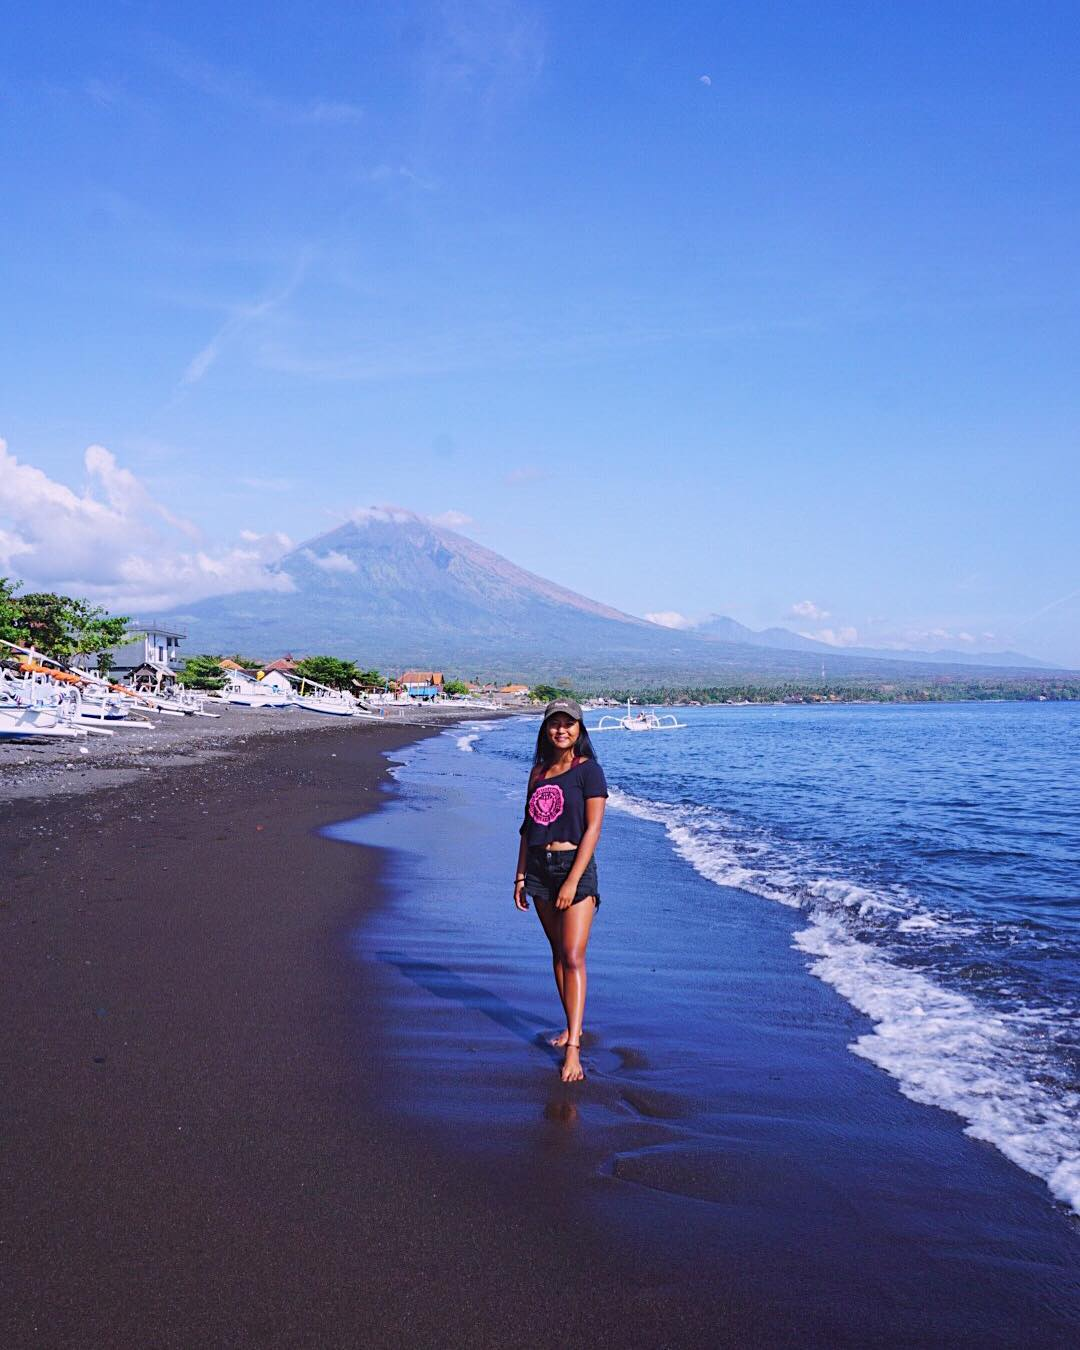 9. Amed Bali secret beach, East Bali hidden beach! via @karliiiiitaa